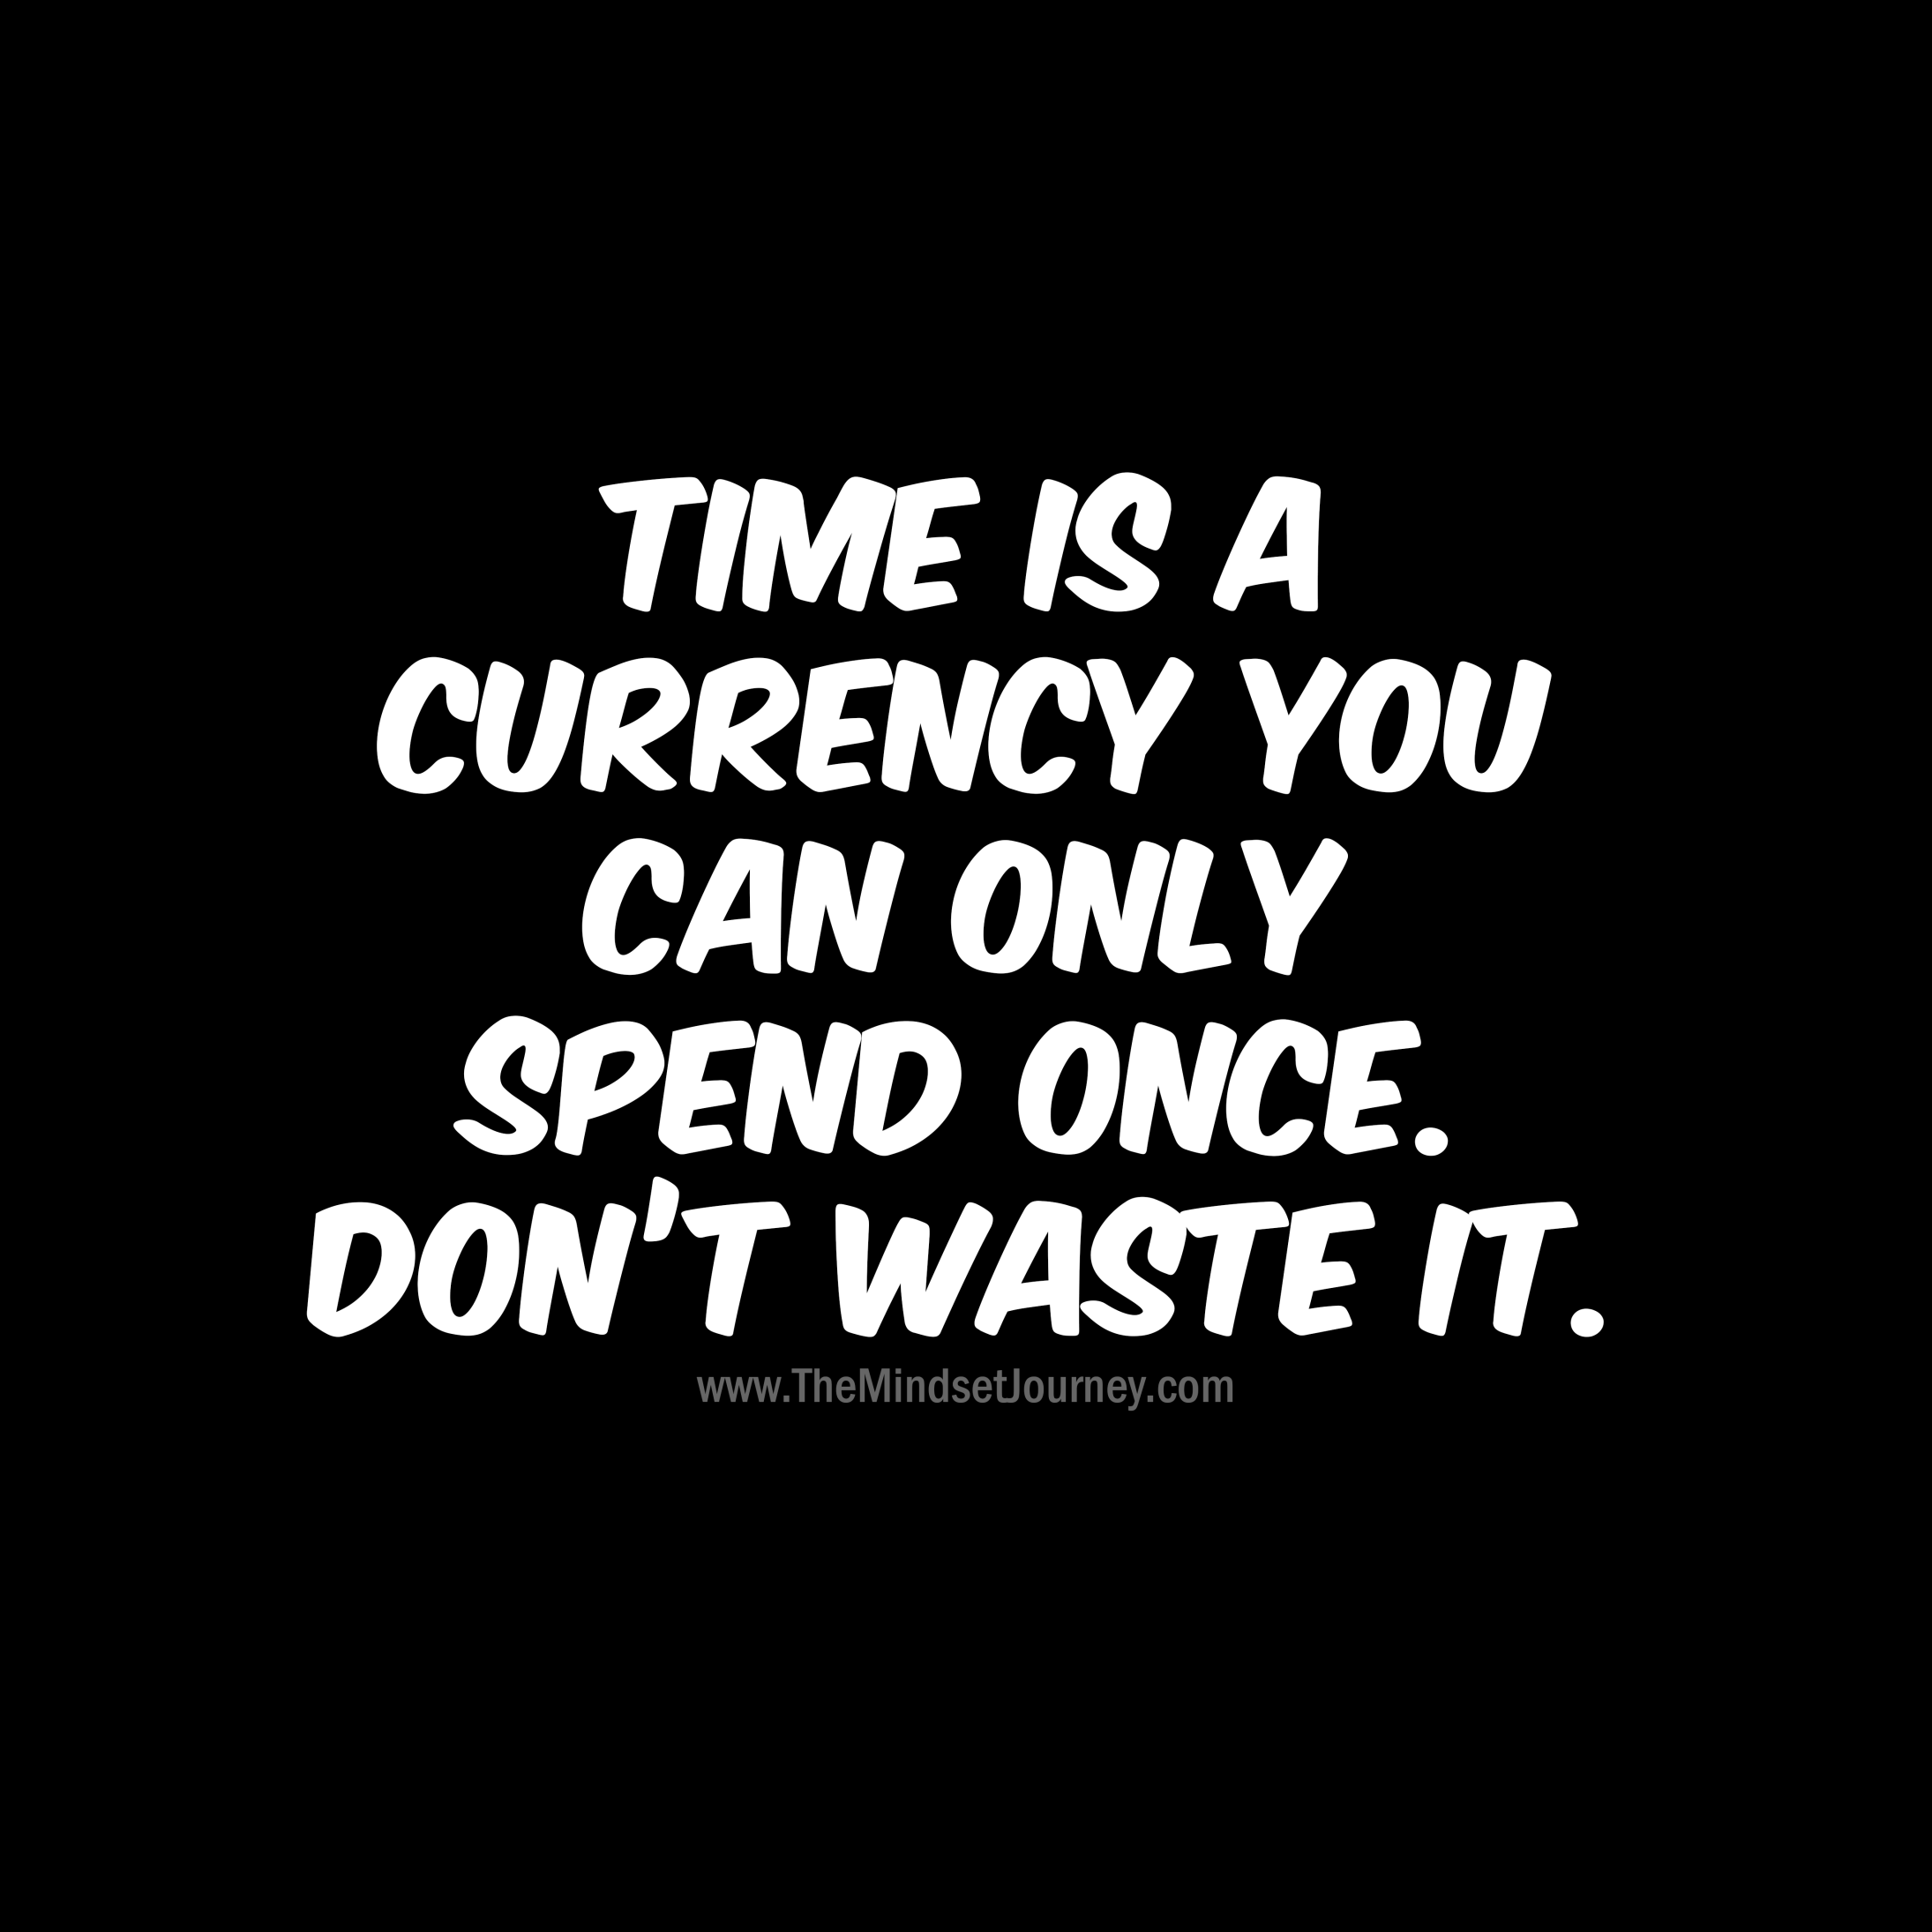 Time is a currency you can only spend once. Don't waste it. - The Mindset Journey